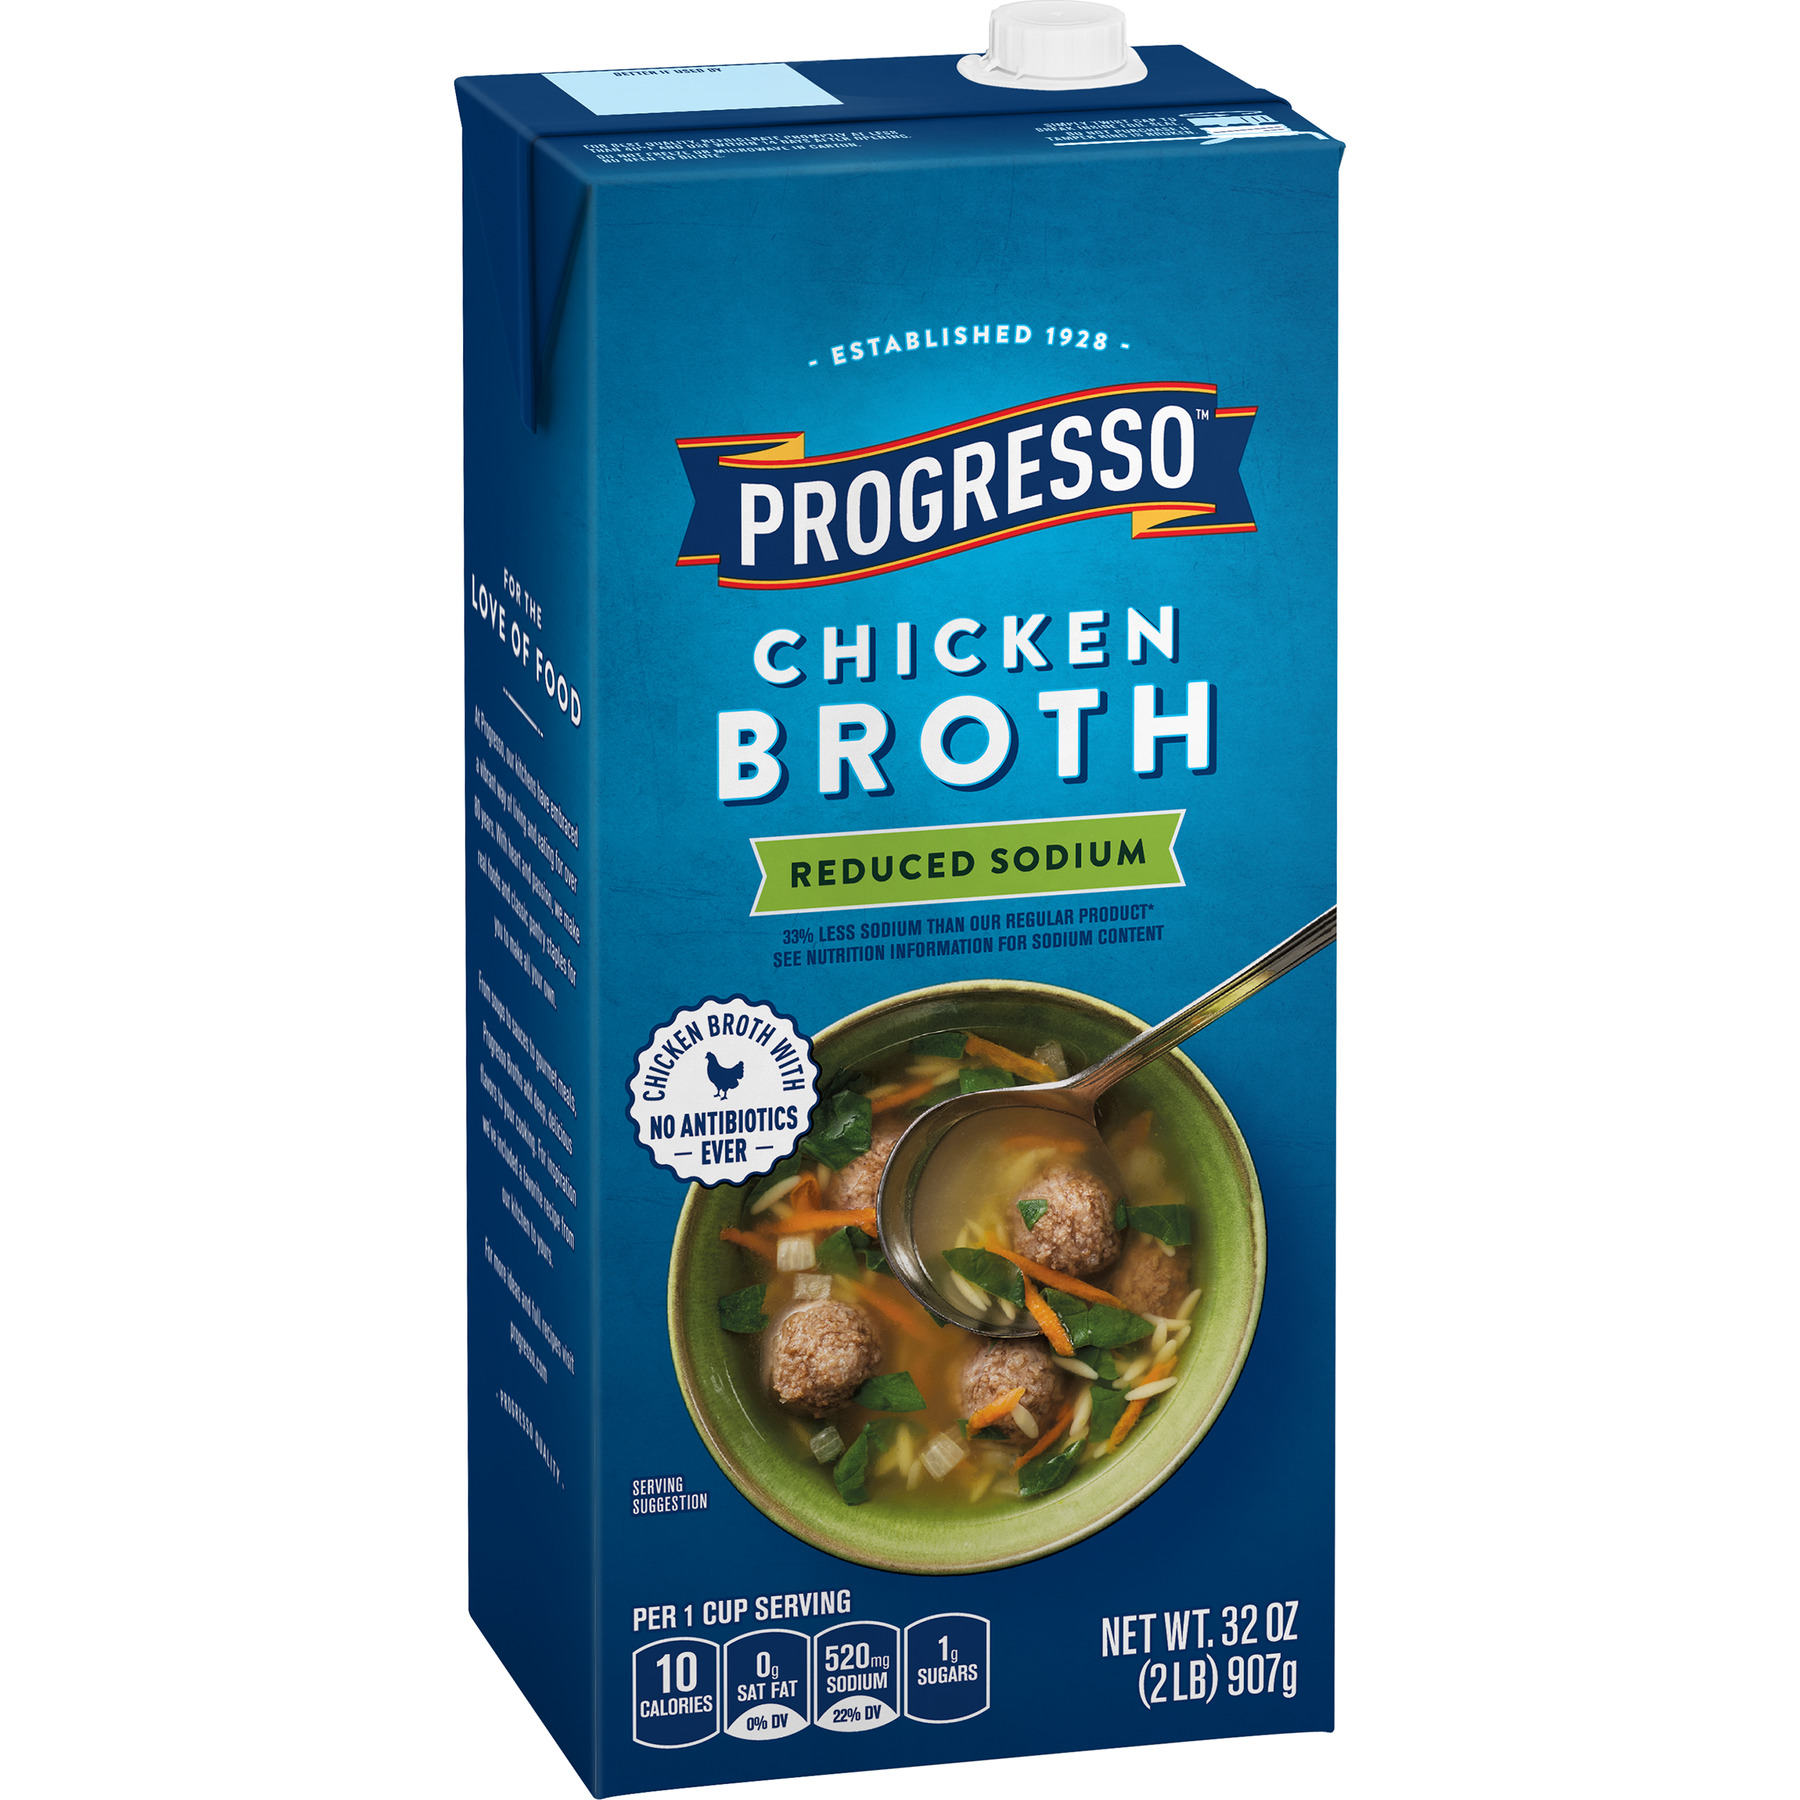 Progresso Reduced Sodium, Gluten Free Chicken Broth, 32 oz